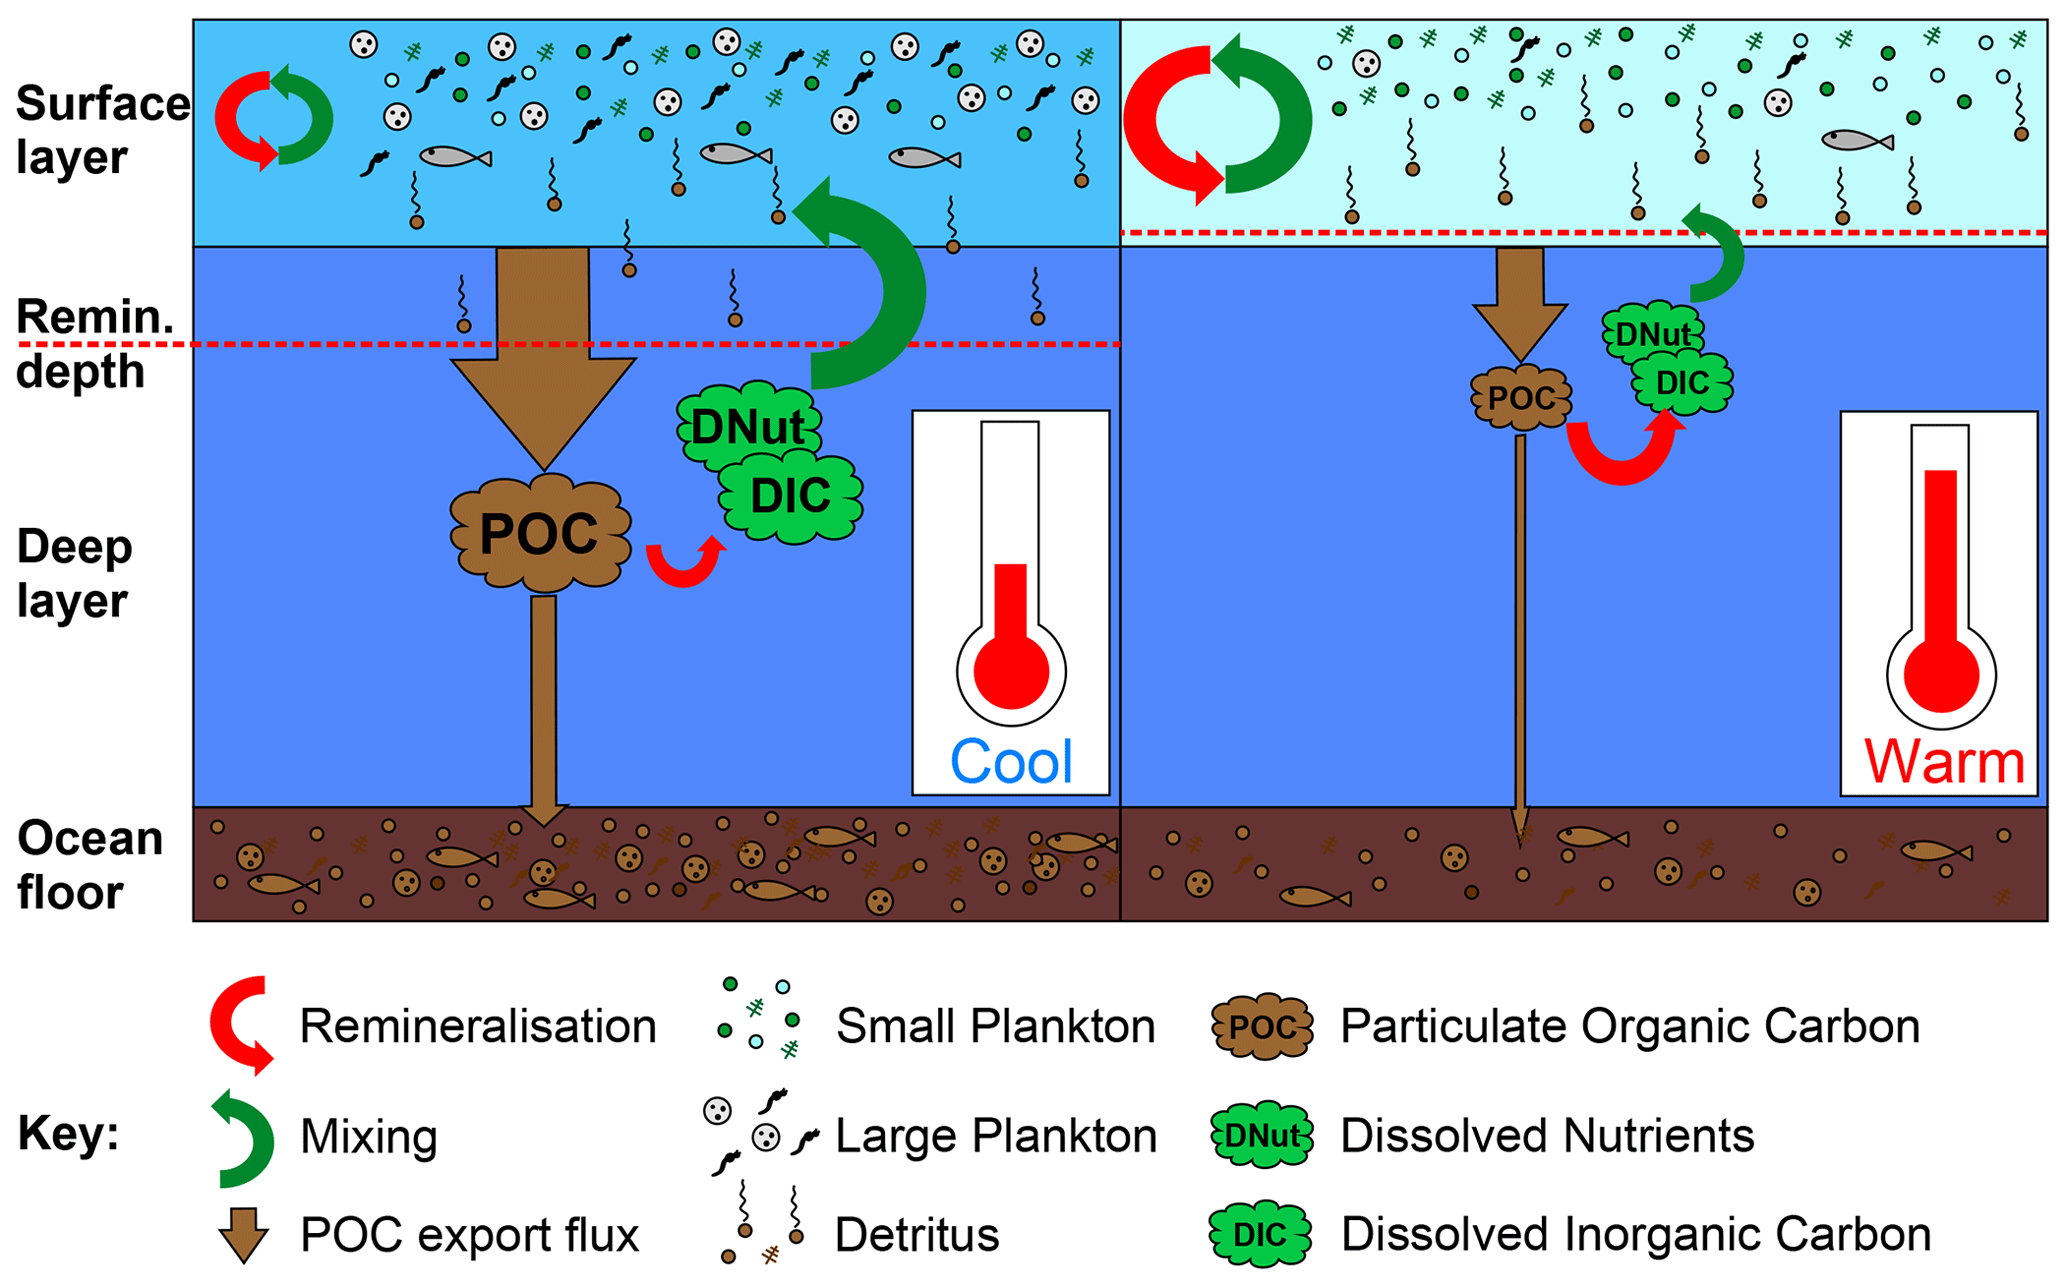 Schematic illustrating the impact of warming on the soft tissue biological pump. On the left-side, under cooler preindustrial conditions cGEnIE's surface layer remains fairly well mixed with the deep ocean (large green arrow from deep to surface layers), returning dissolved nutrients and carbon (DNut & DIC) from the remineralisation of exported POC (red arrow from POC to DIC & DNut), while some POC is remineralised partly within the surface layer. On the right-side, warming leads to a shift to dominance by smaller plankton as well as stratification leading to less mixing between the shallow and deep ocean, while shoaling of the remineralisation depth leads to greater recycling of nutrients and carbon close to the surface layer, combining to result in an overall reduction in POC export and sedimentation and an overall increase in the residence time of nutrients and carbon in the ocean